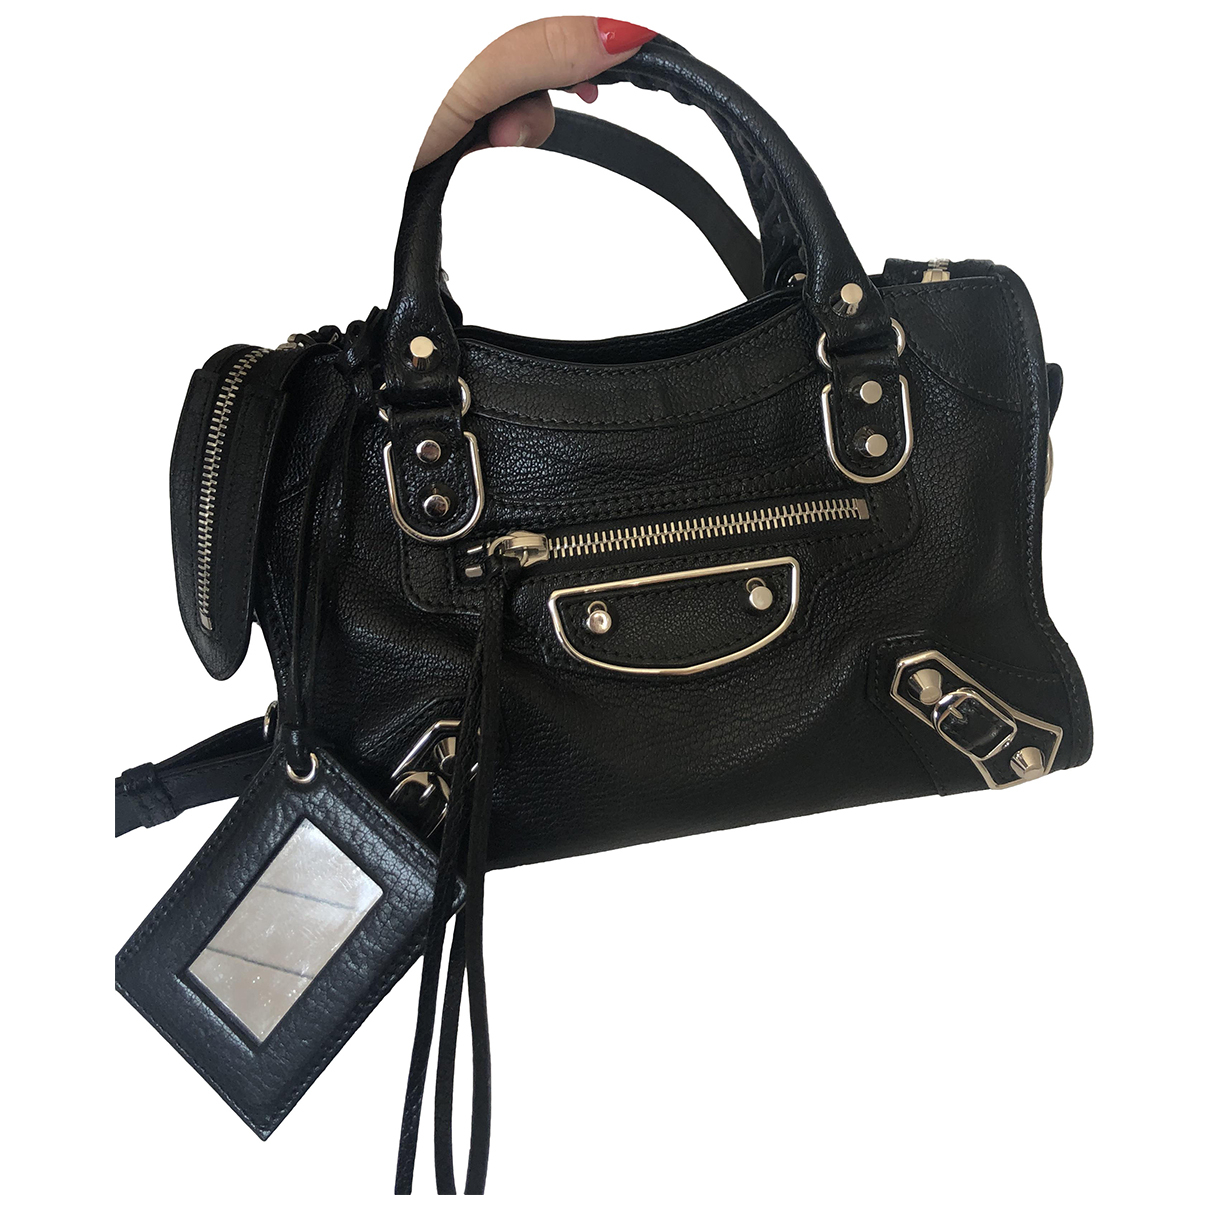 Balenciaga Classic Metalic Black Leather handbag for Women \N